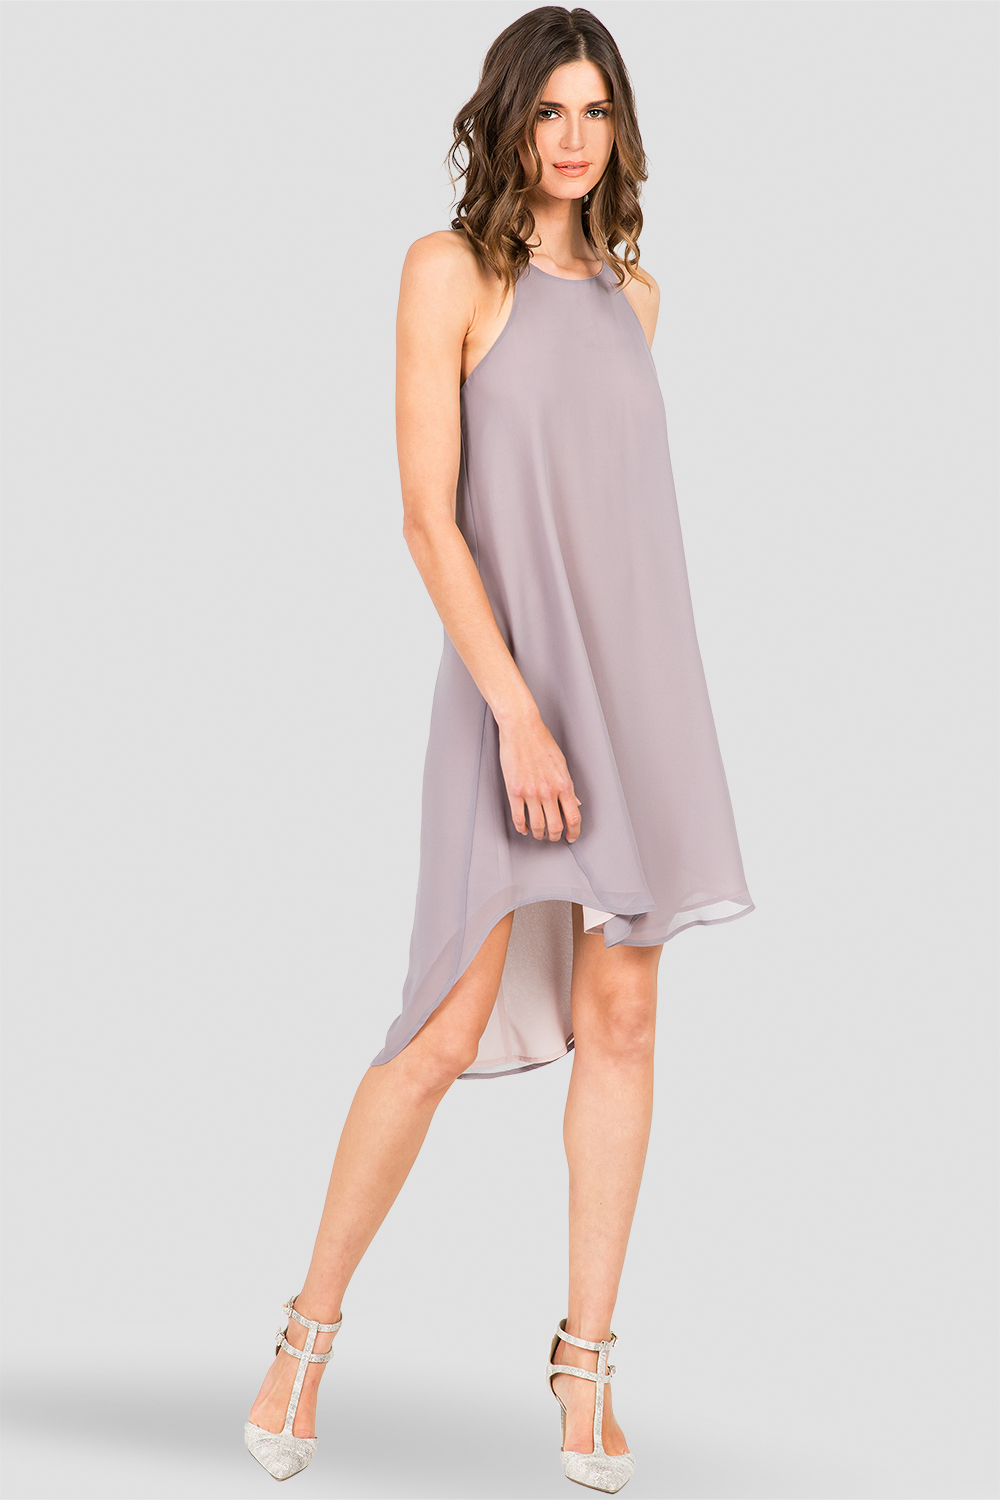 Standards & Practices Women's Grey  Racerback Dress